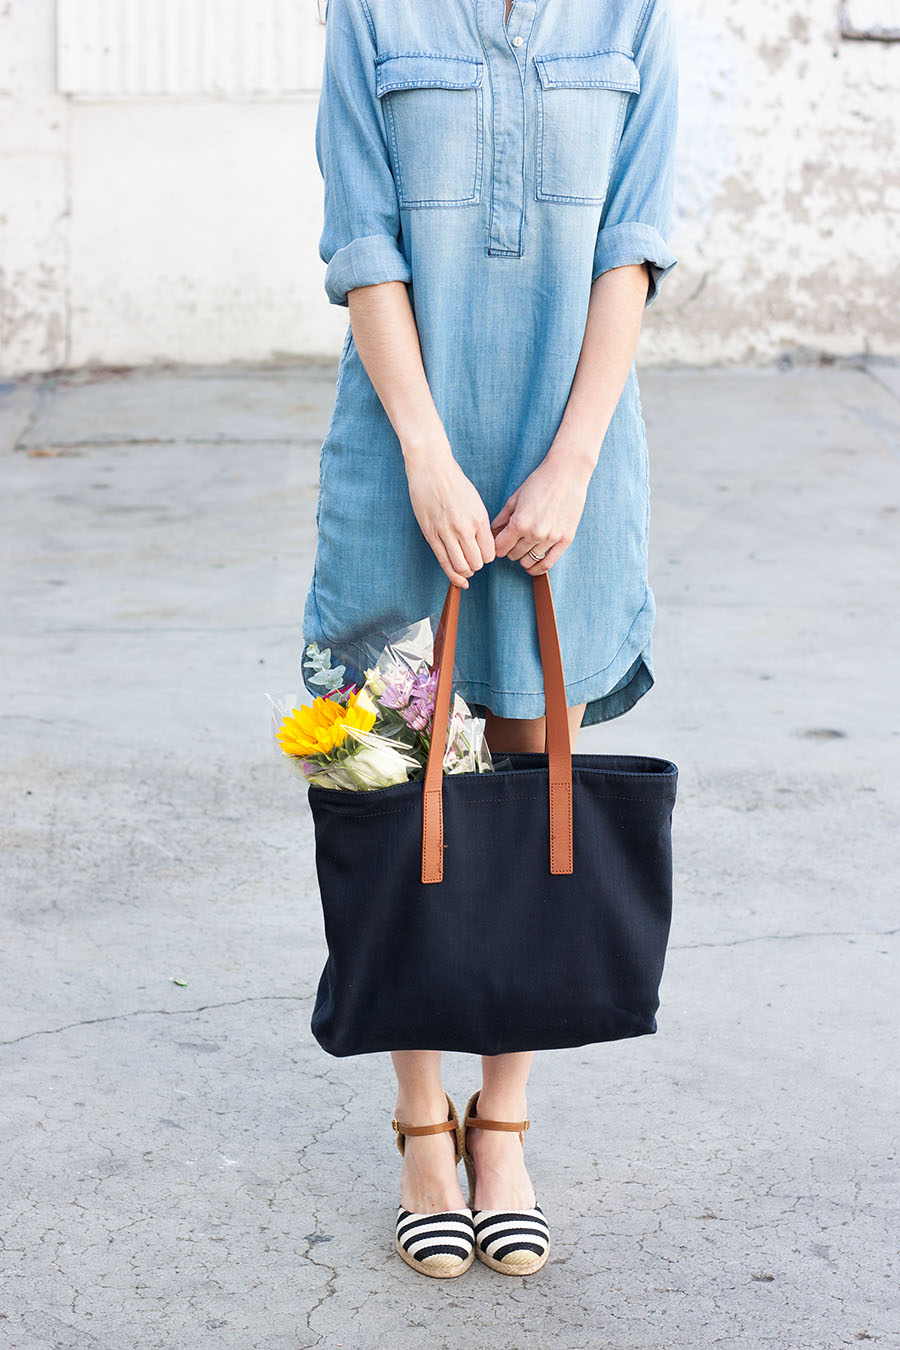 Everlane Tote, Striped Espadrille Wedges